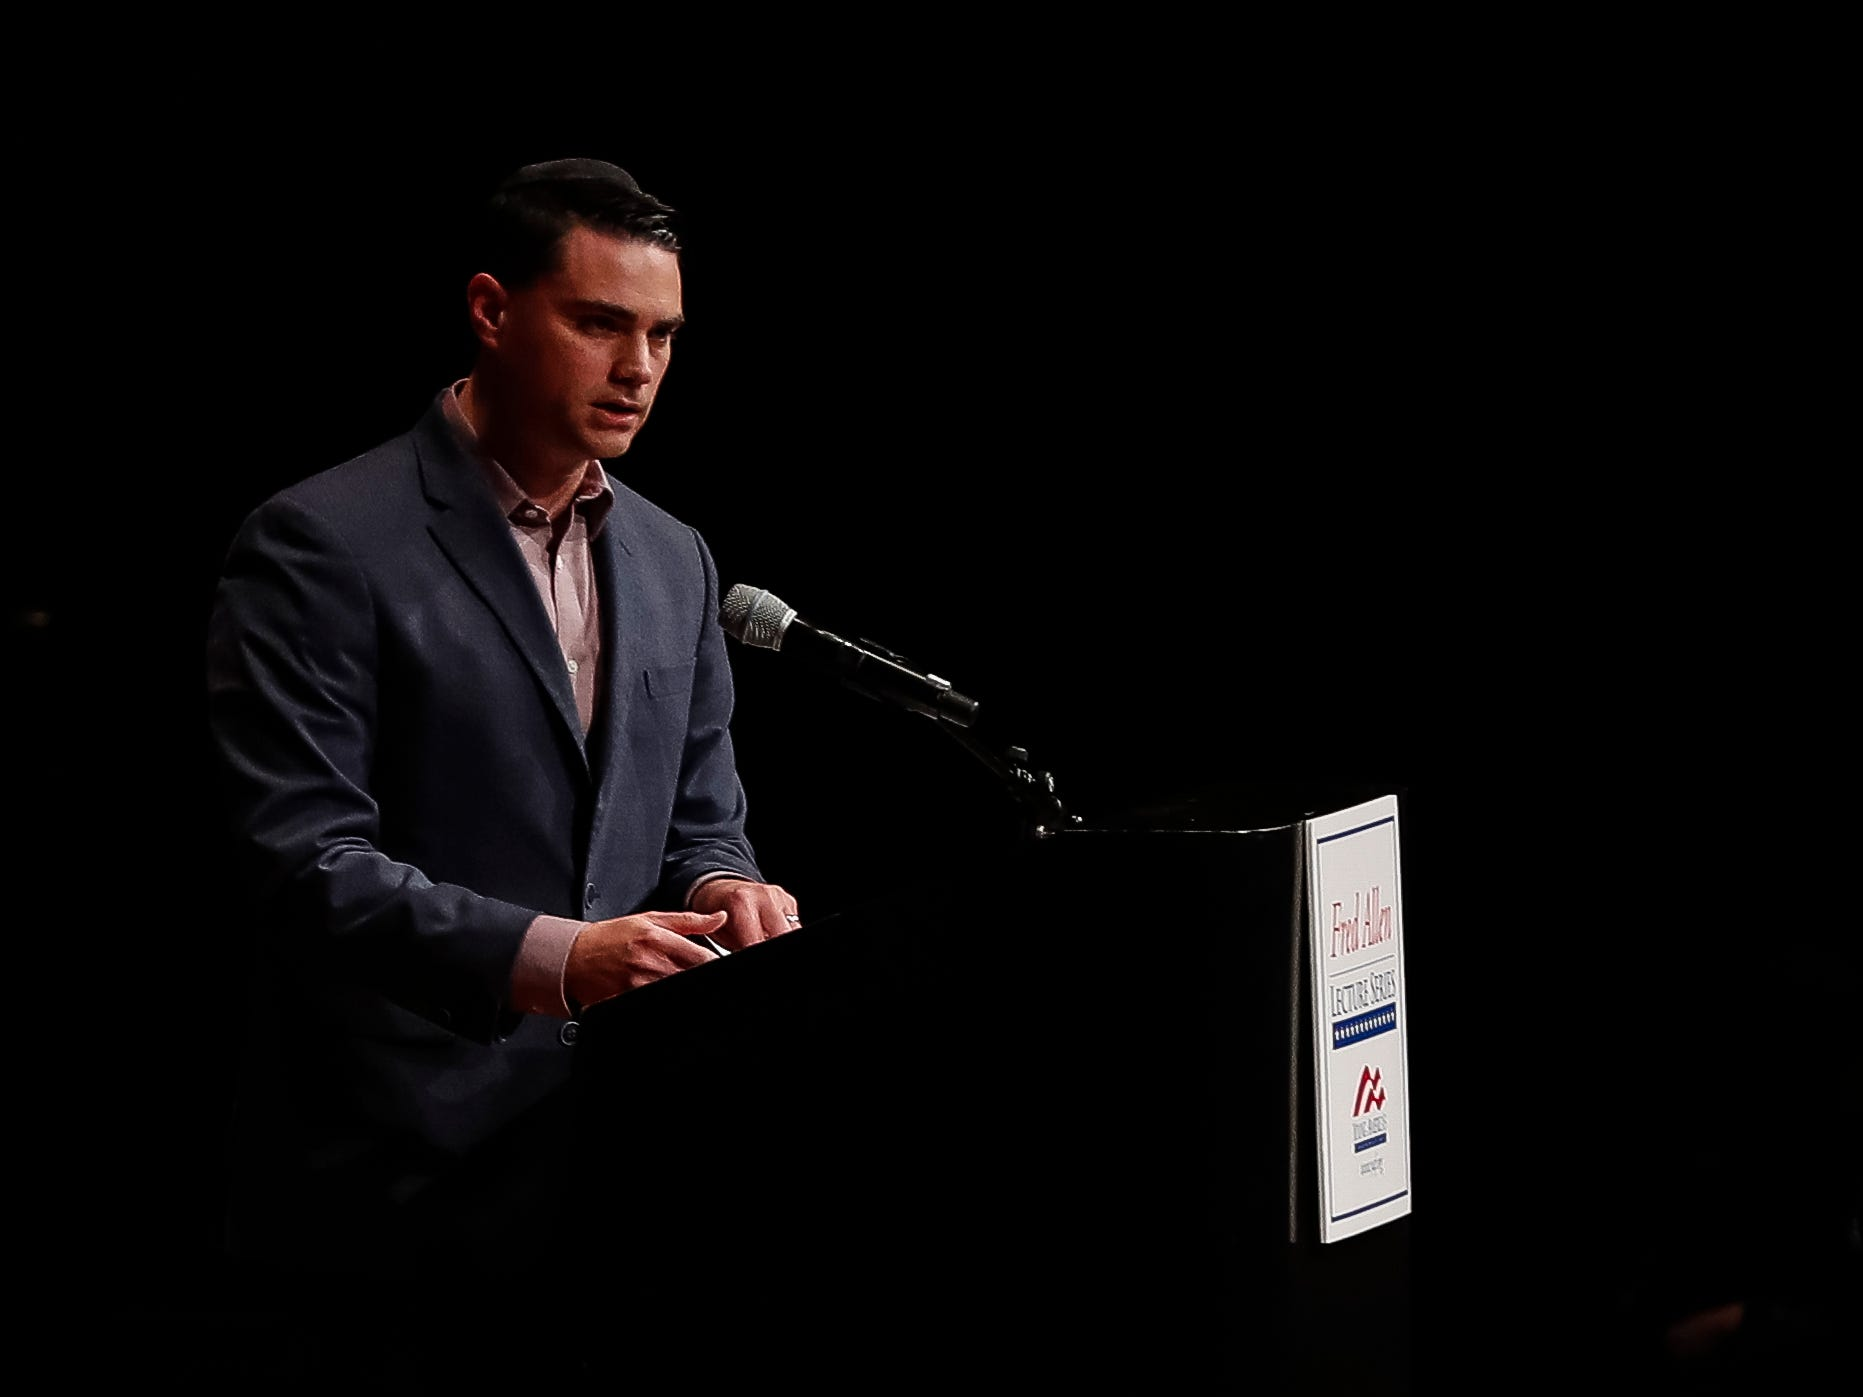 Ben Shapiro speaks at the Rackham Auditorium on U-M central campus in Ann Arbor, Tuesday, March 12. , Tuesday, March 12, 2019.